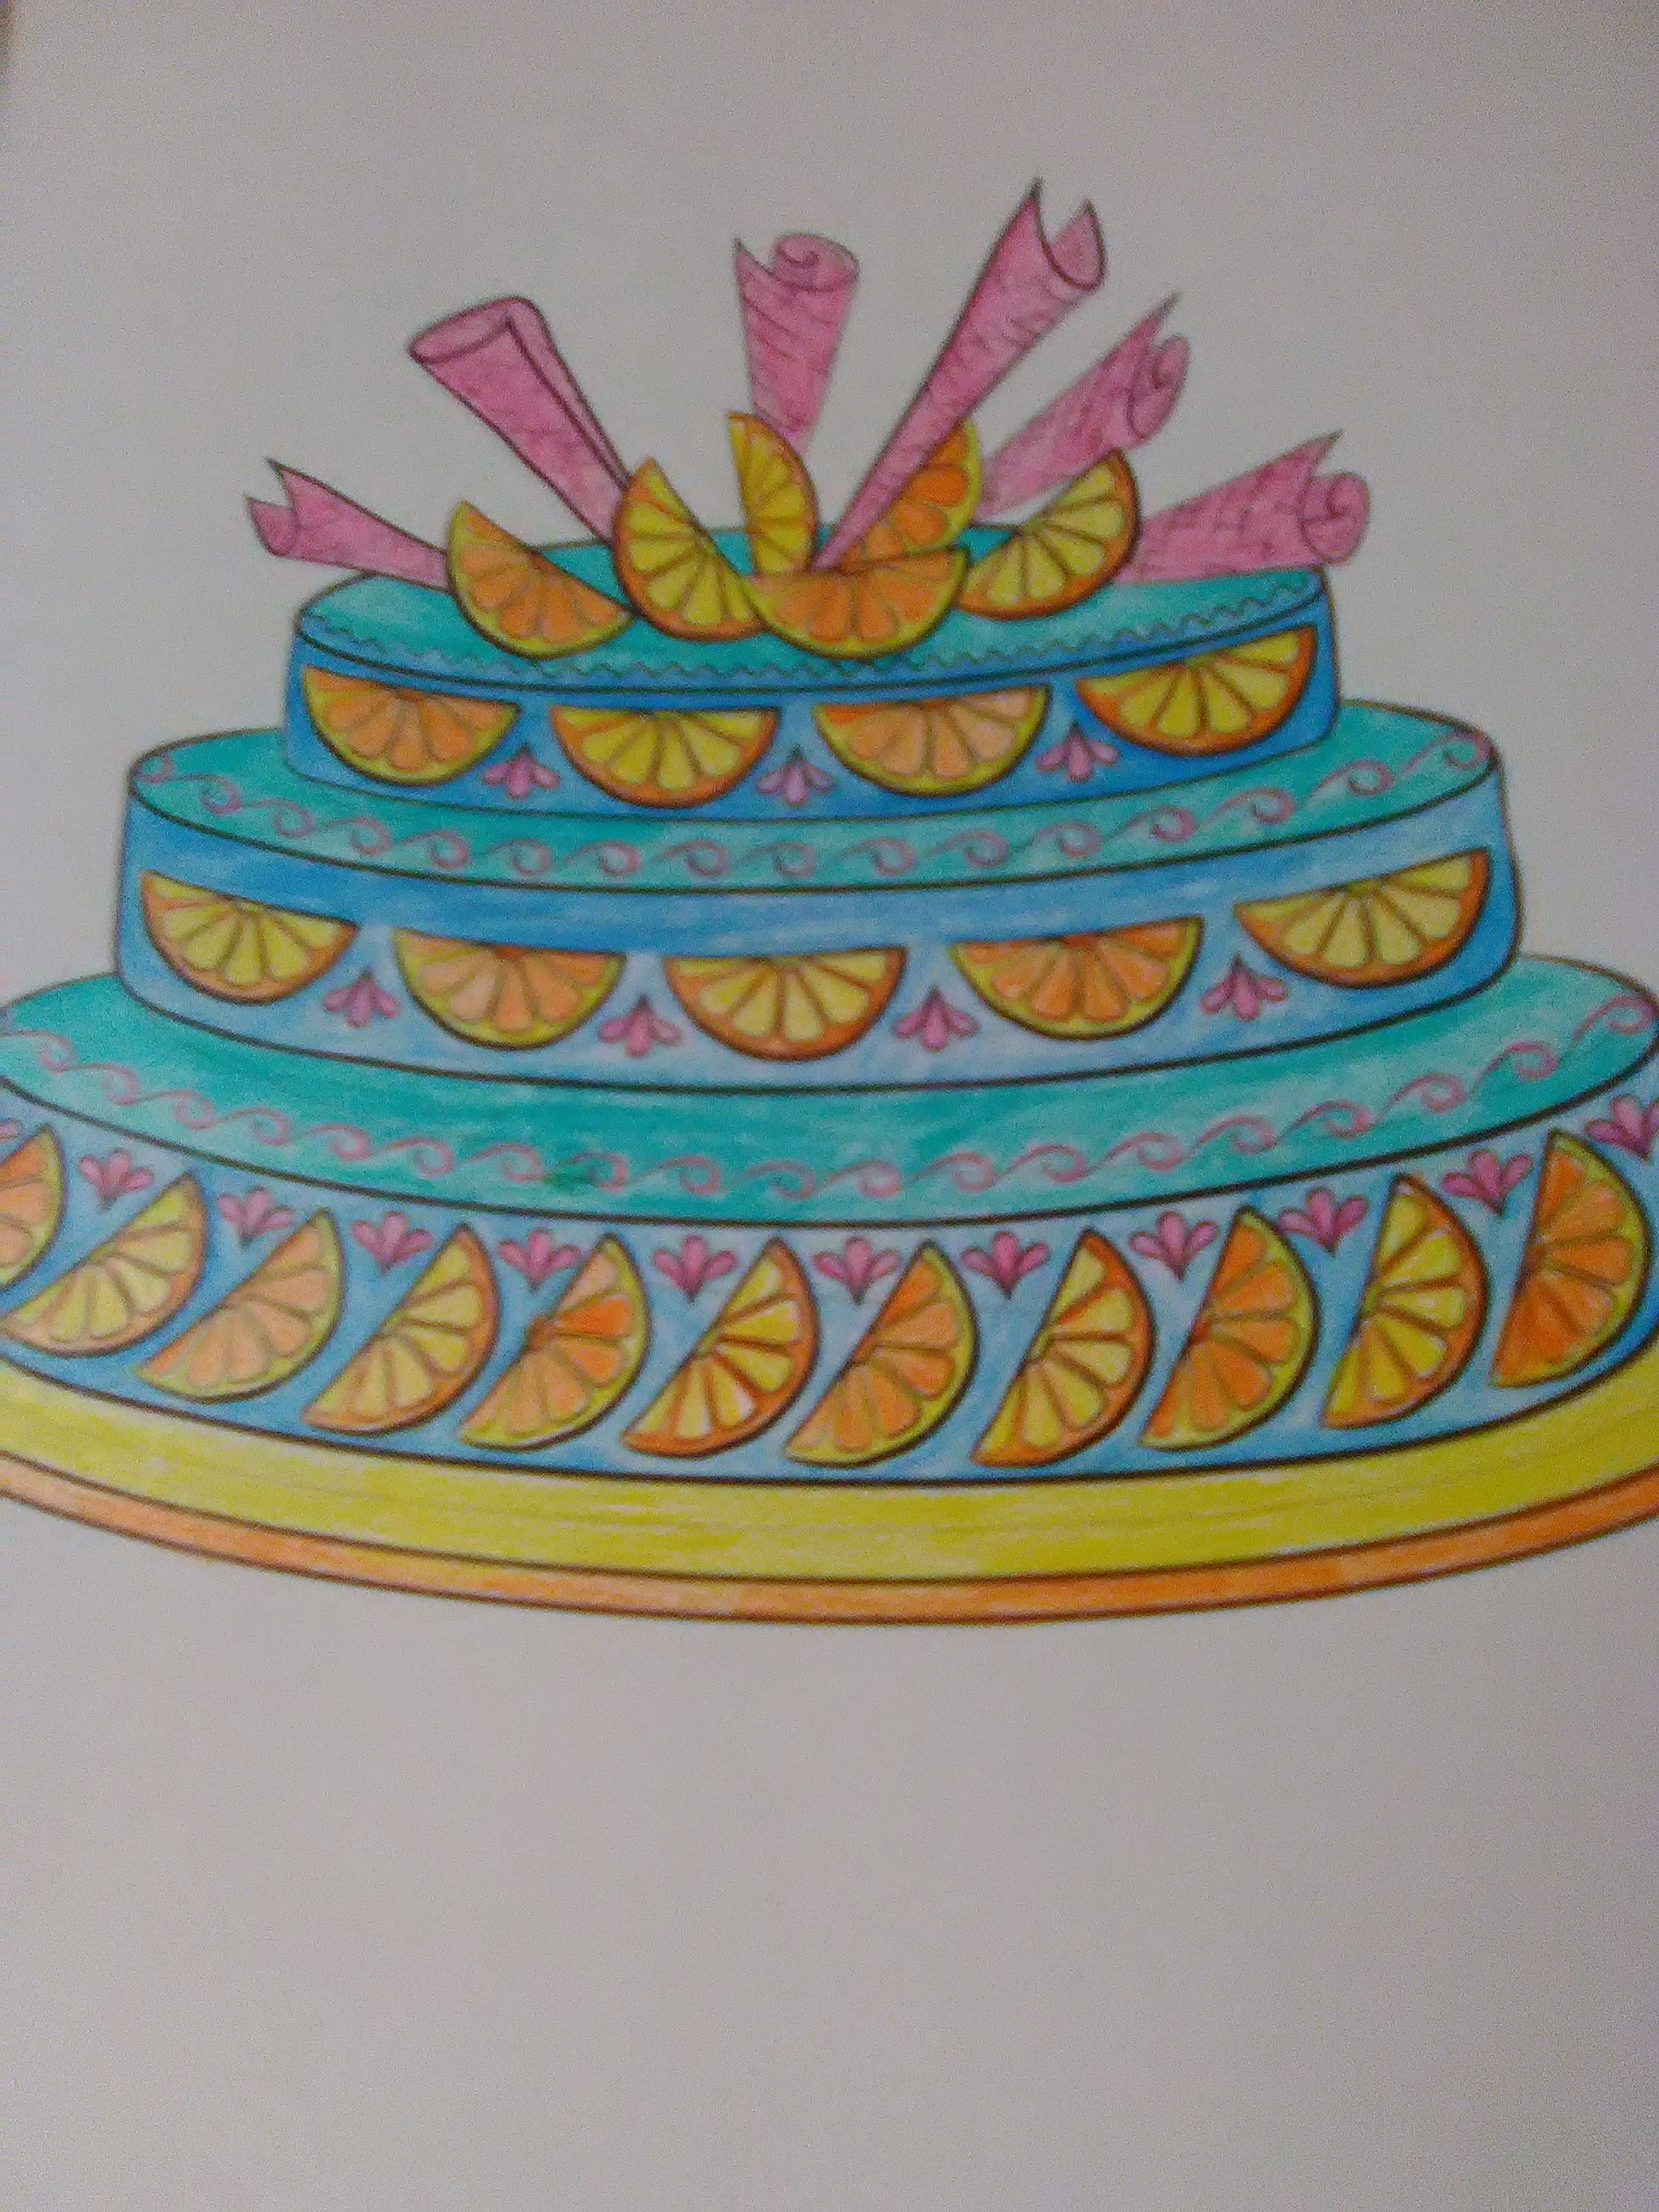 Cake!😋 | Color | Cake, Shading drawing, Desserts